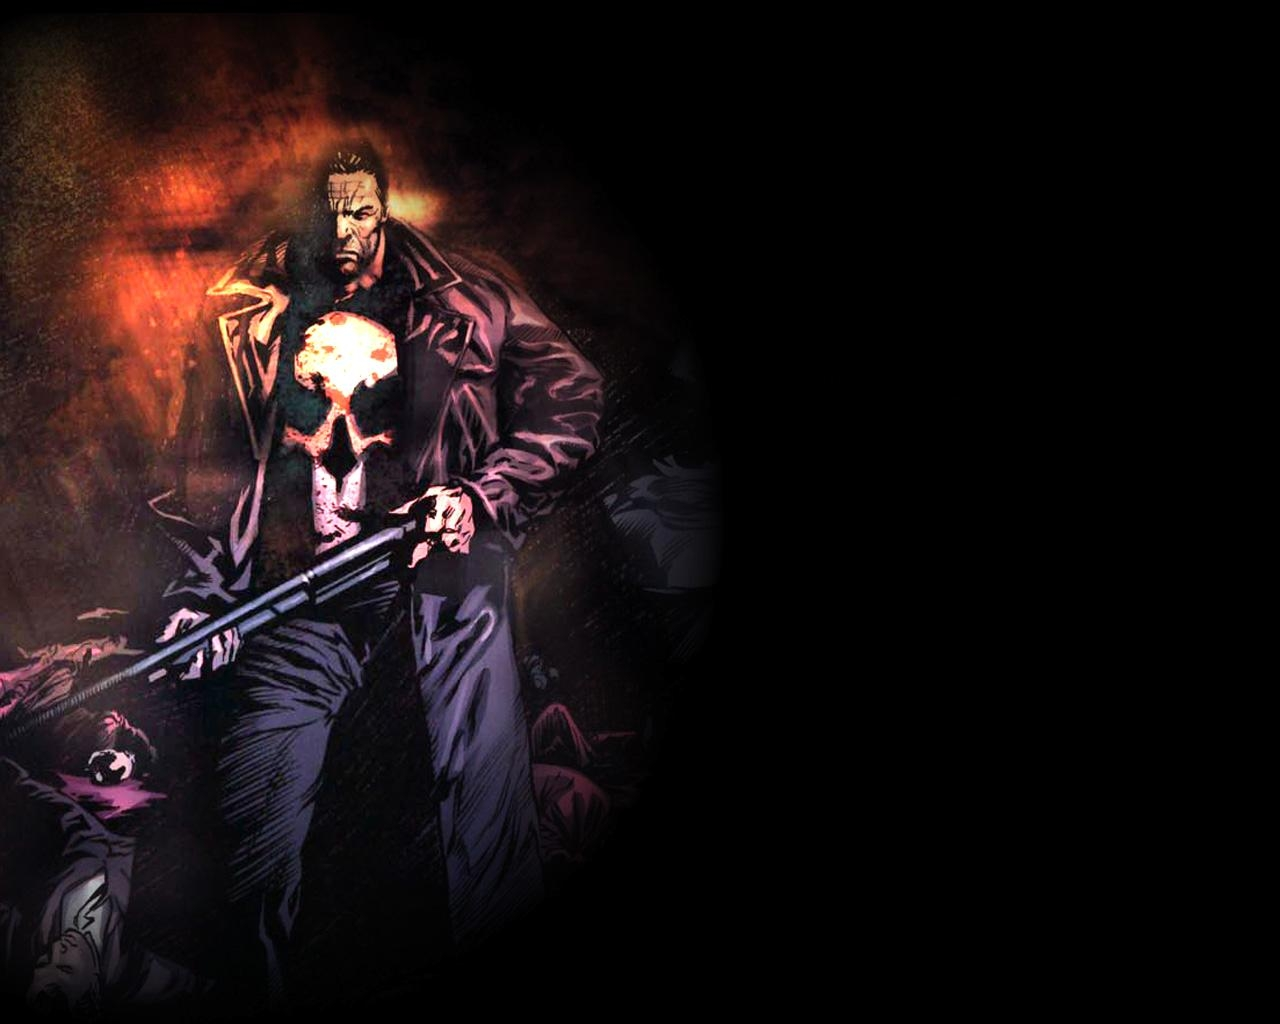 The Punisher HD Wallpapers  Backgrounds  Wallpaper  1280x1024